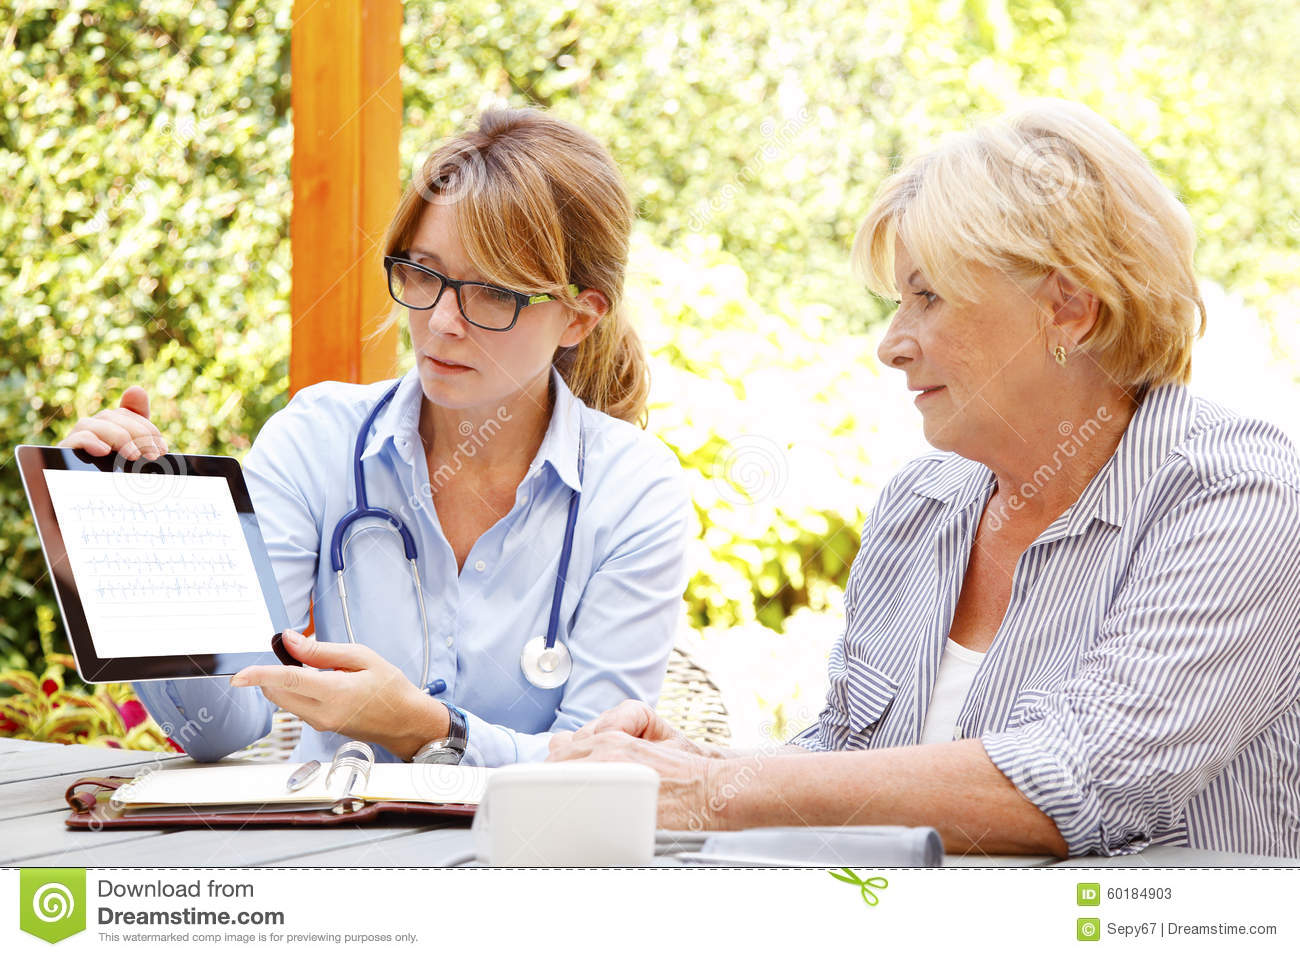 Home Healthcare Stock Photo Image 60184903